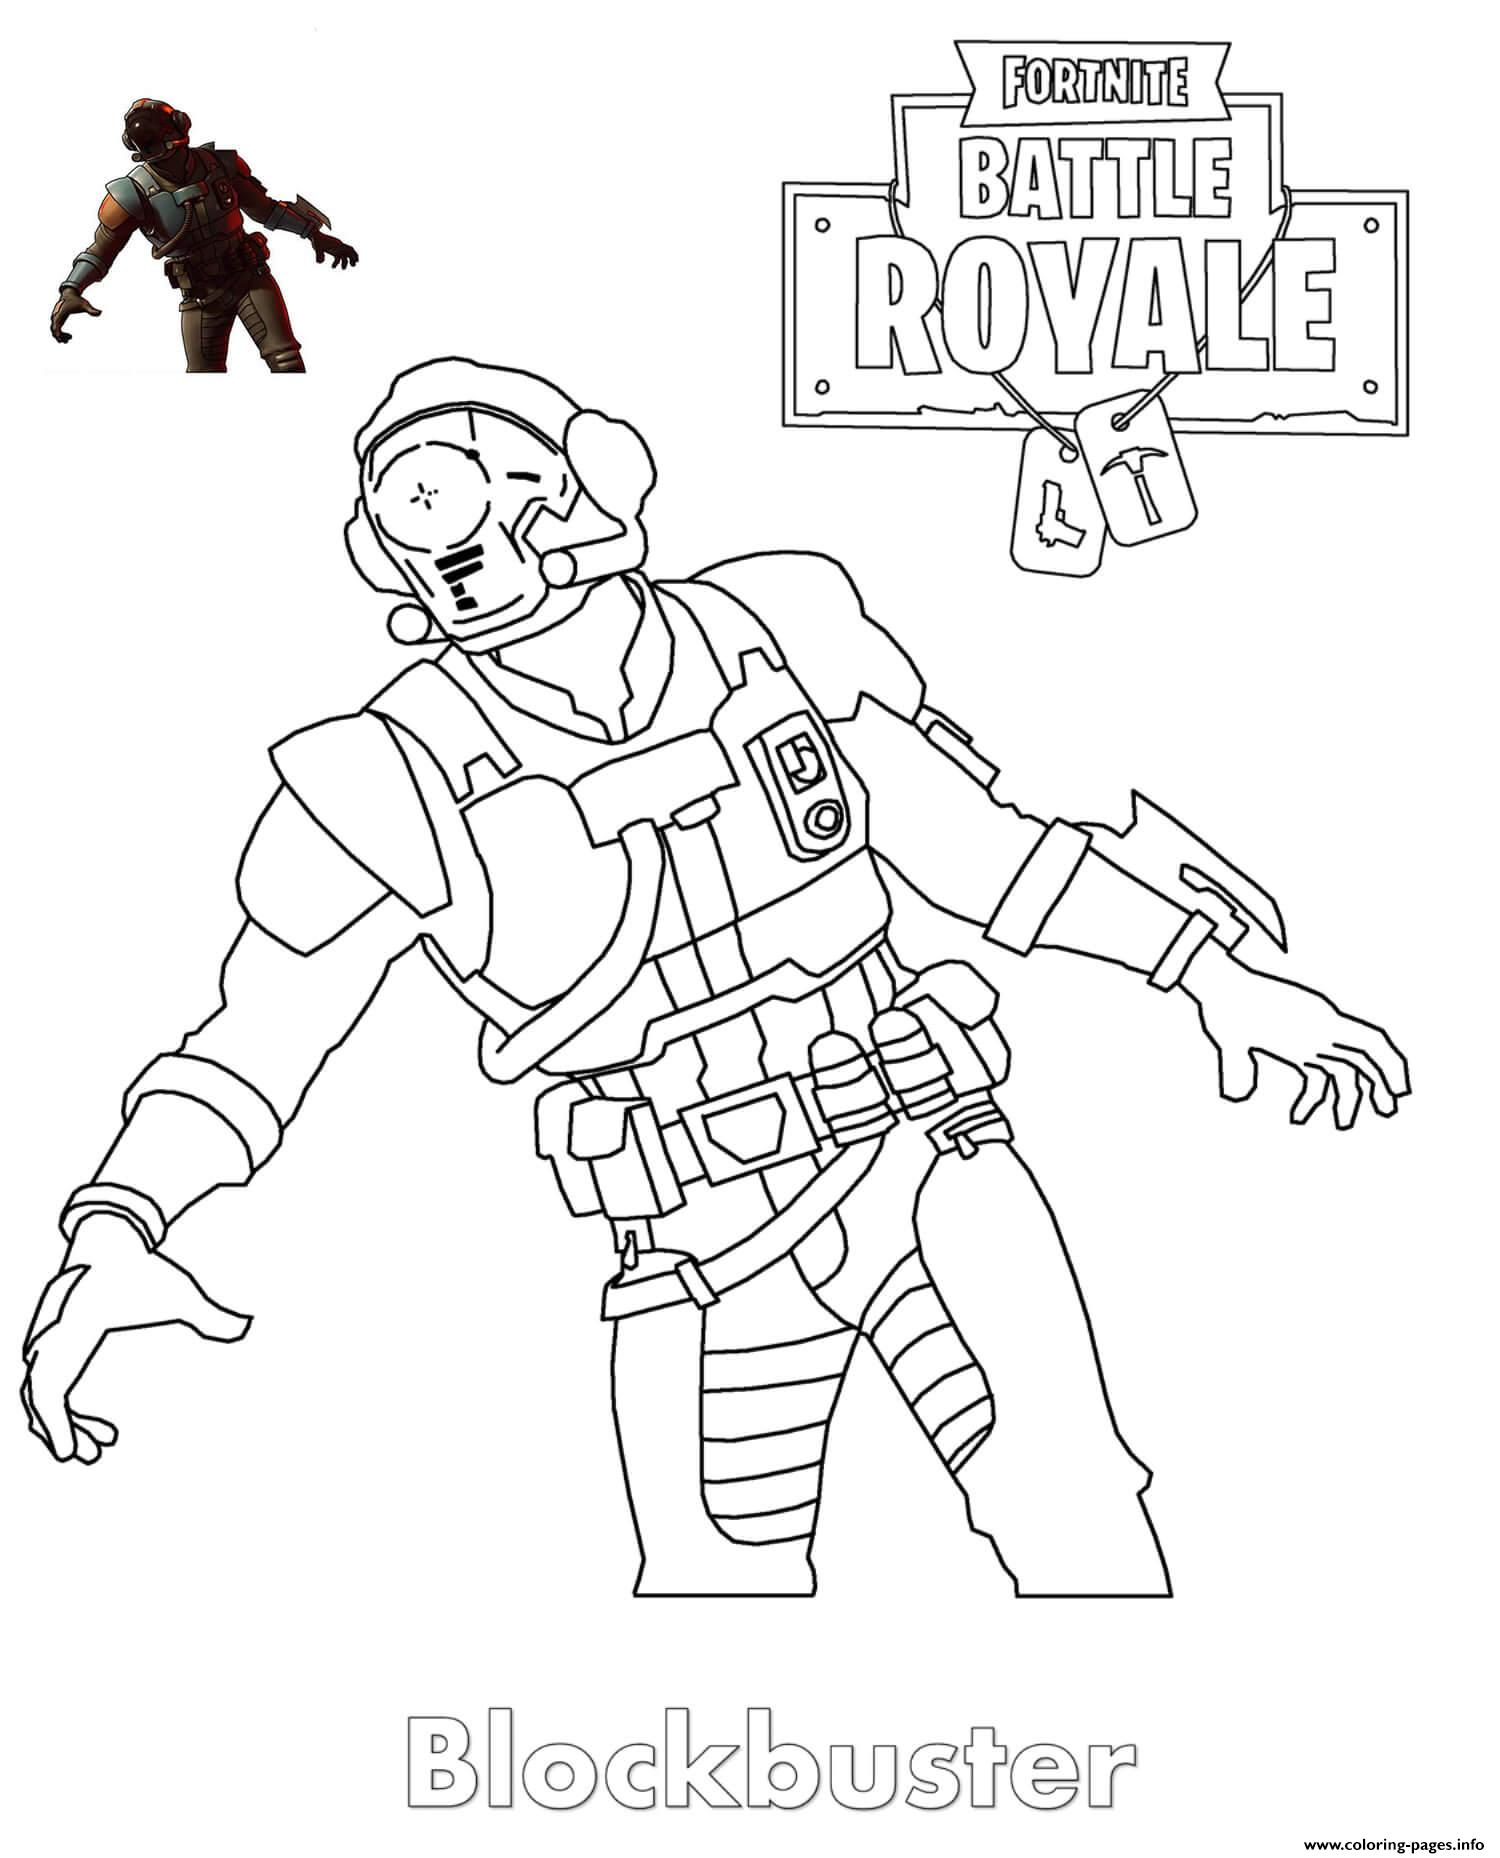 Blockbuster Fortnite Skin Coloring Pages Printable